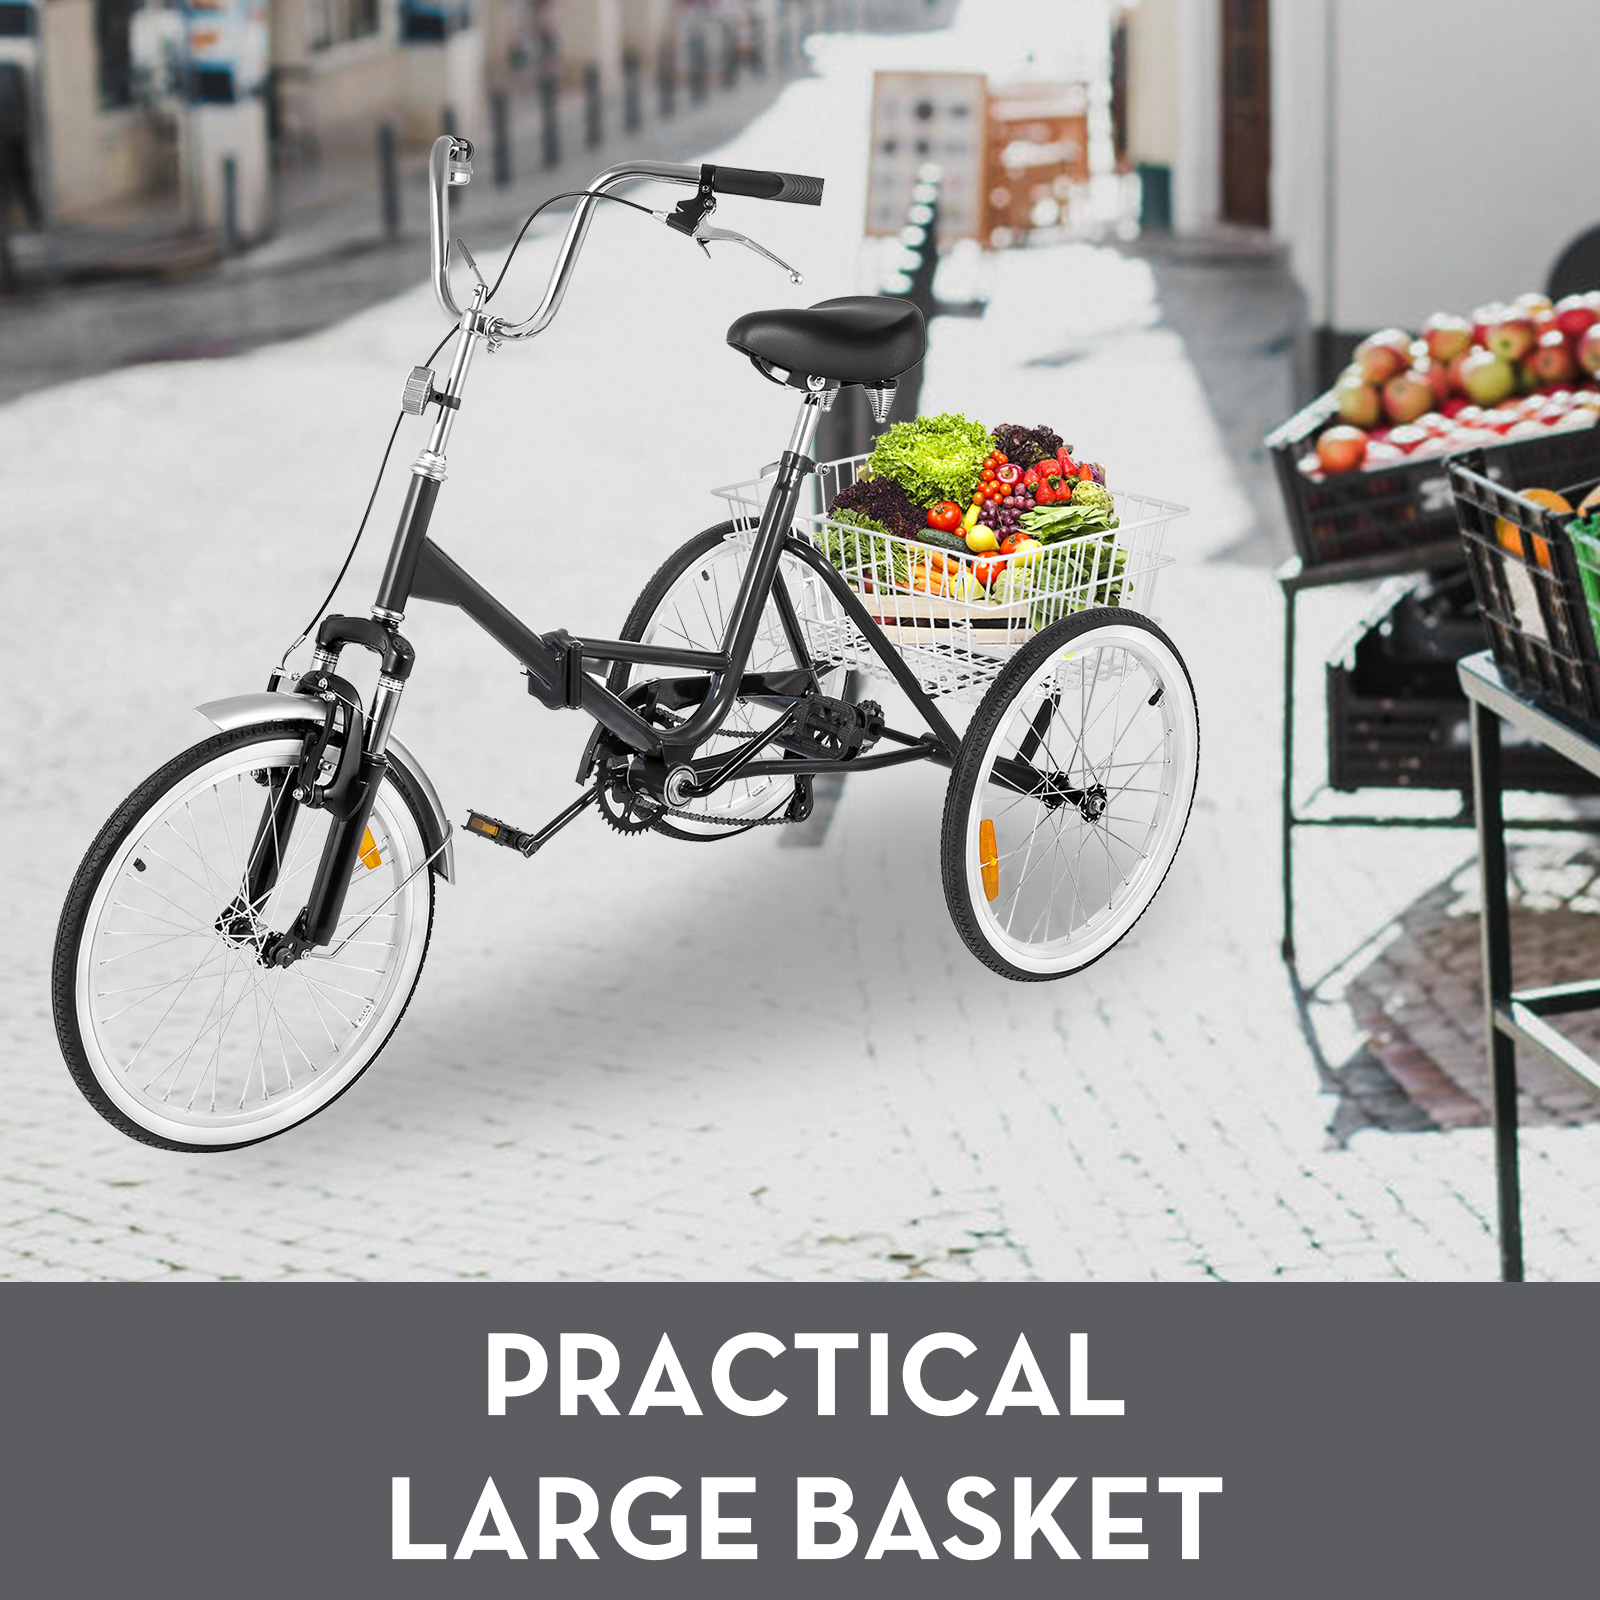 20-24-26-034-Adult-Tricycle-1-7-Speed-3-Wheel-Large-Basket-For-Shopping-Optional thumbnail 67